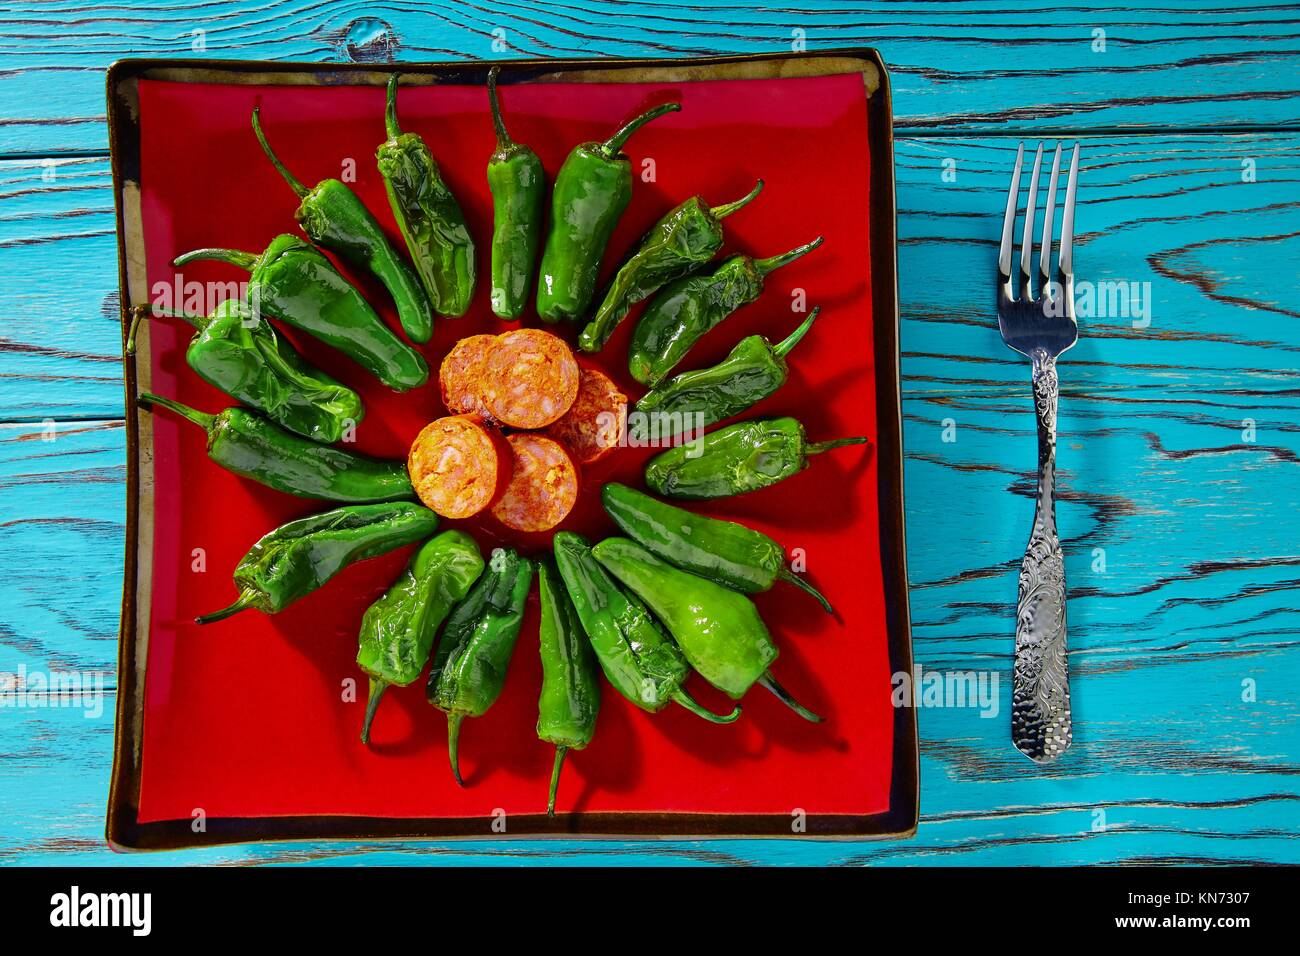 Tapas pimientos del Padron green peppers with sausage. - Stock Image